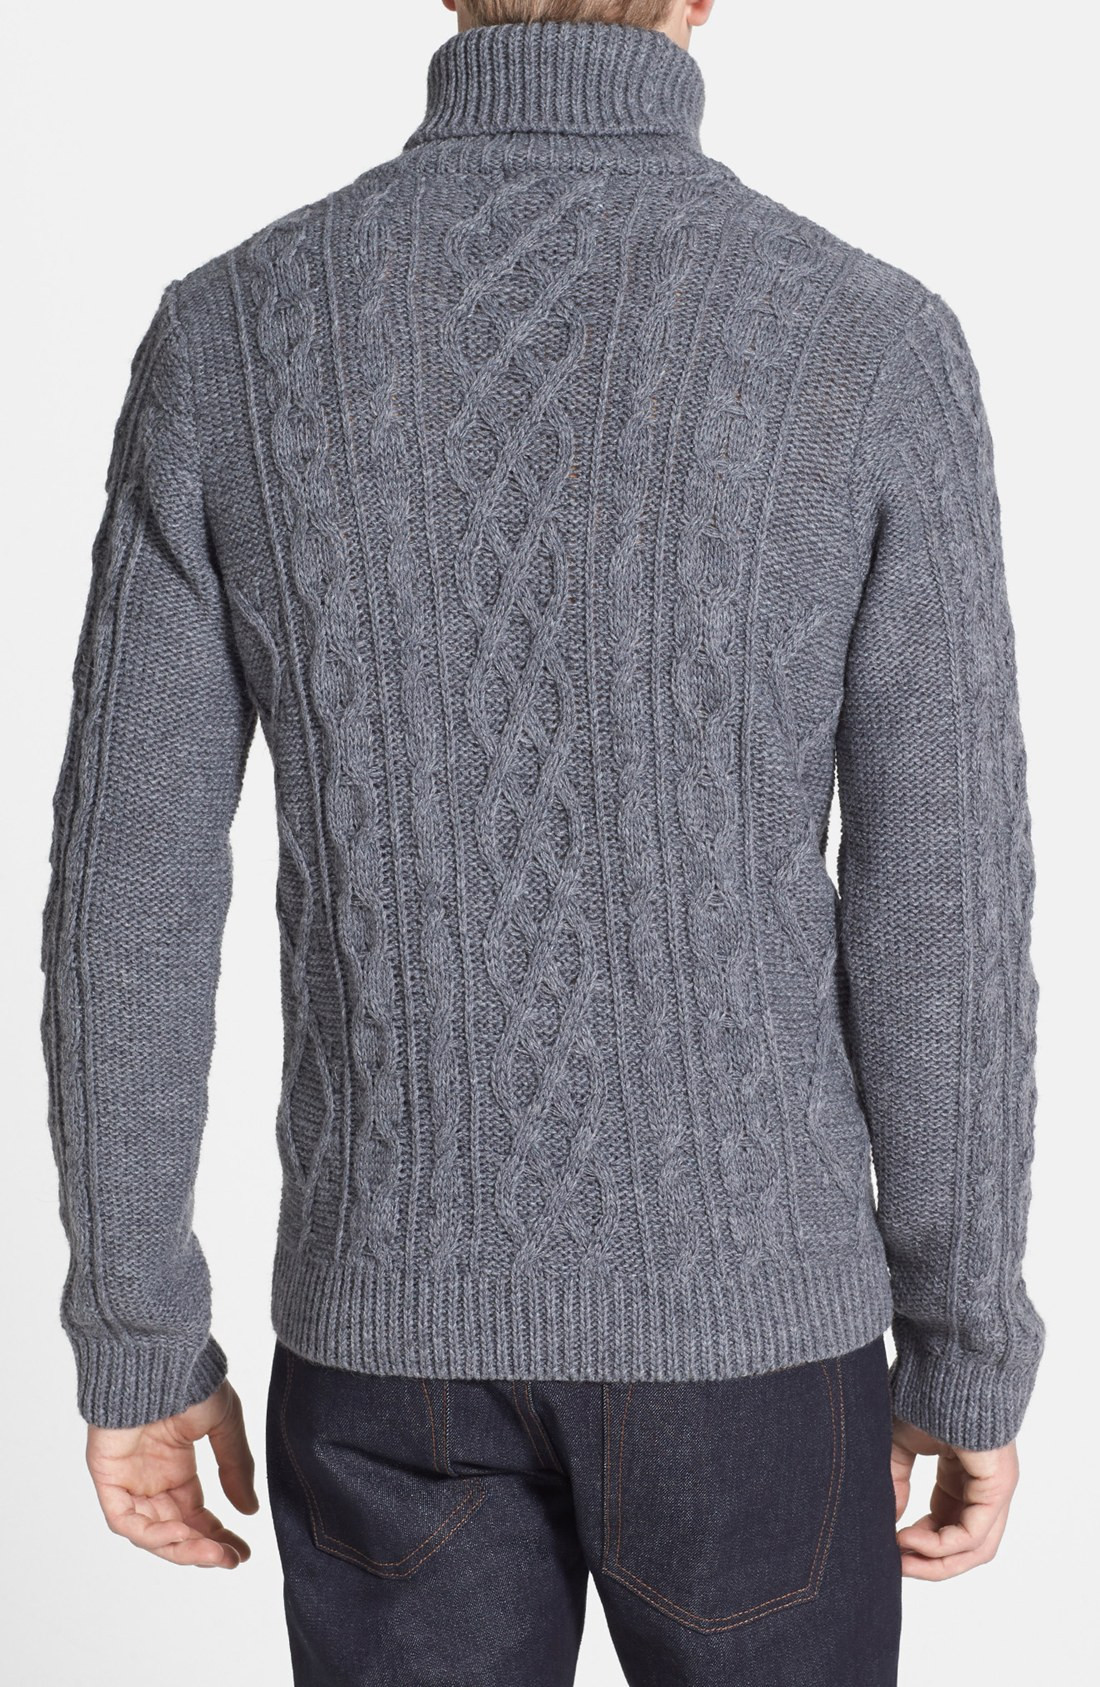 Chunky Cable Knit Sweater New Lyst topman Chunky Cable Knit Turtleneck Sweater In Gray Of Attractive 42 Images Chunky Cable Knit Sweater